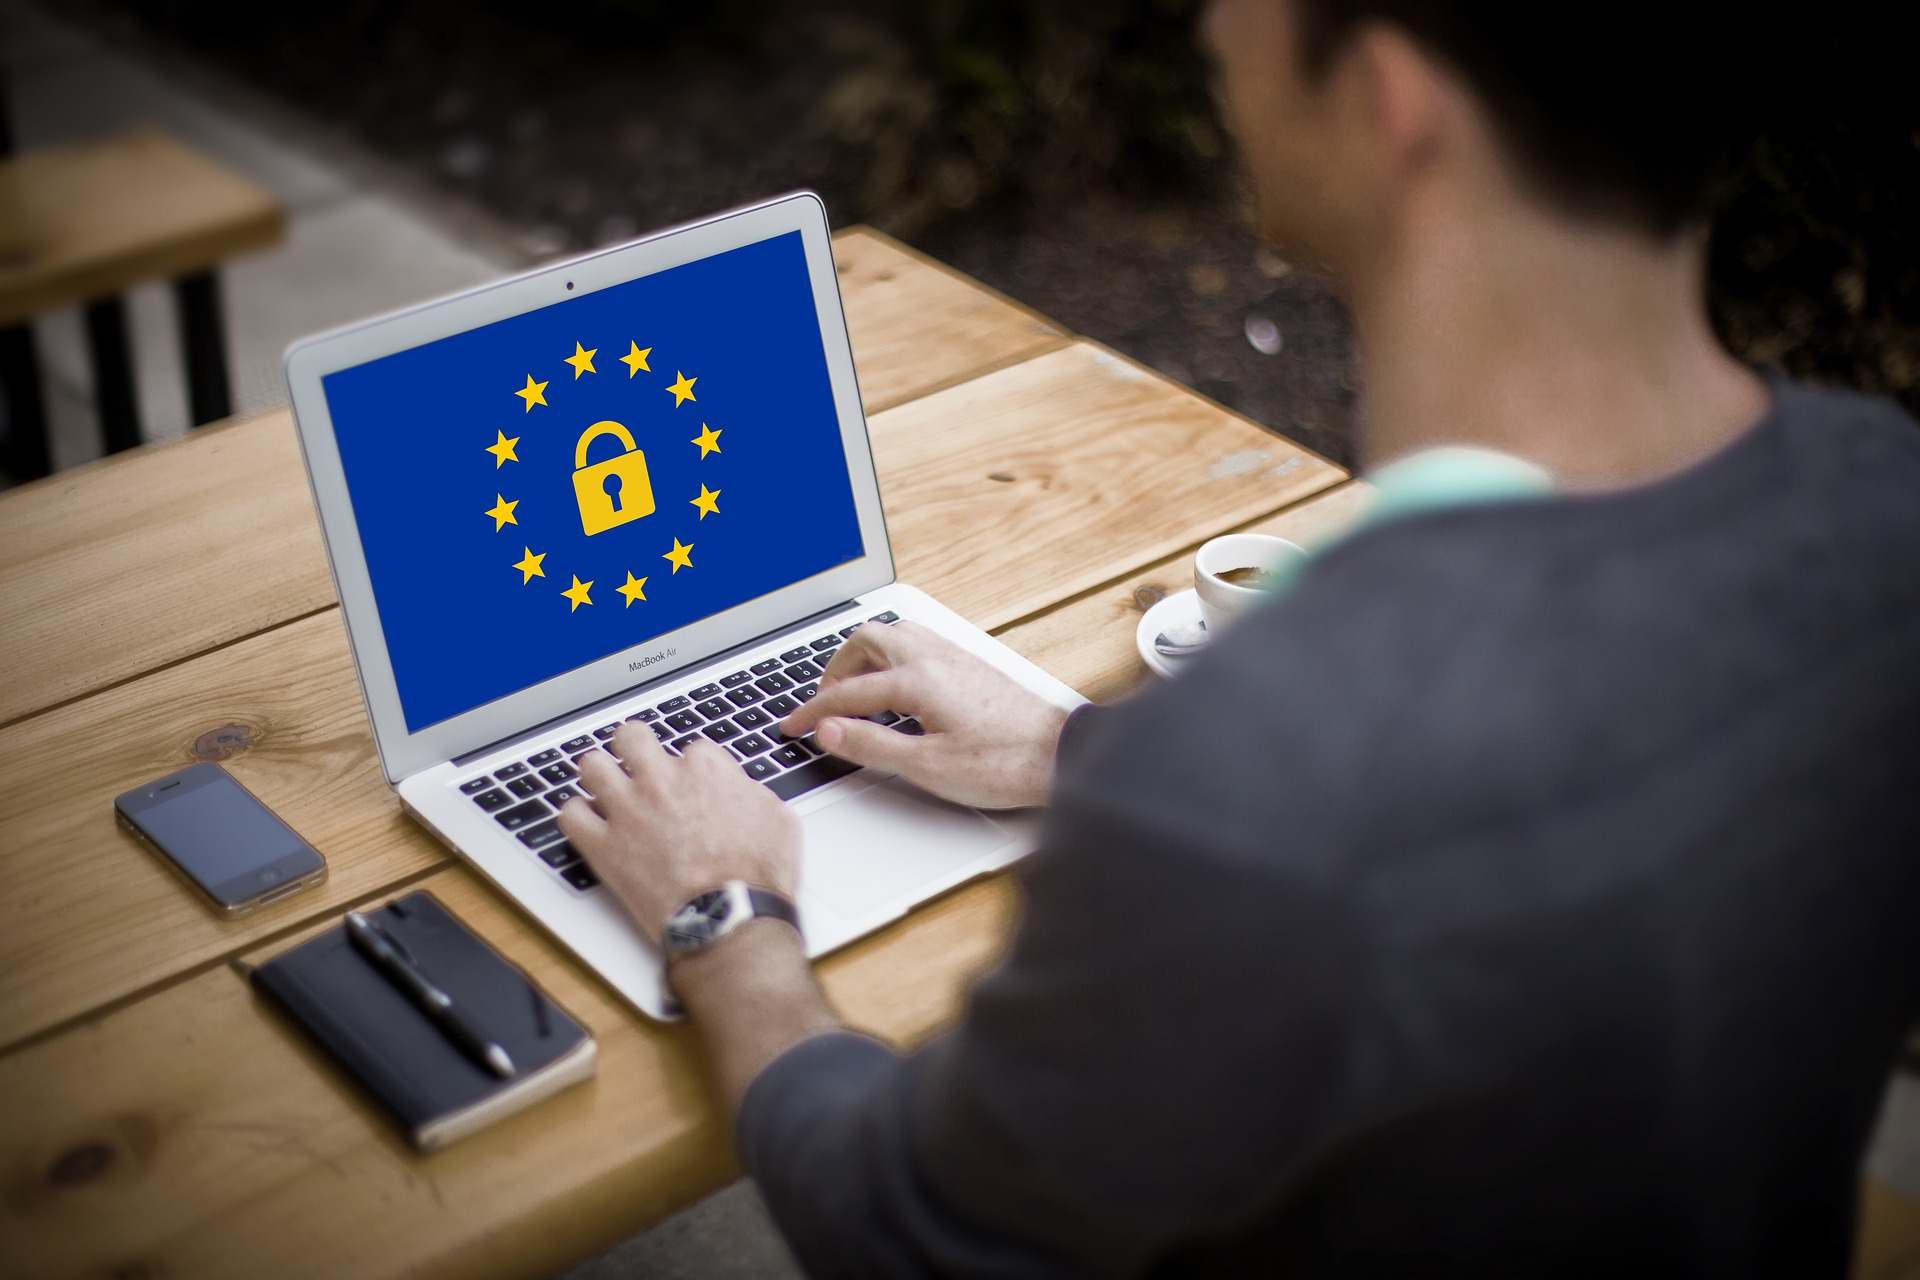 GDPR image on a laptop screen